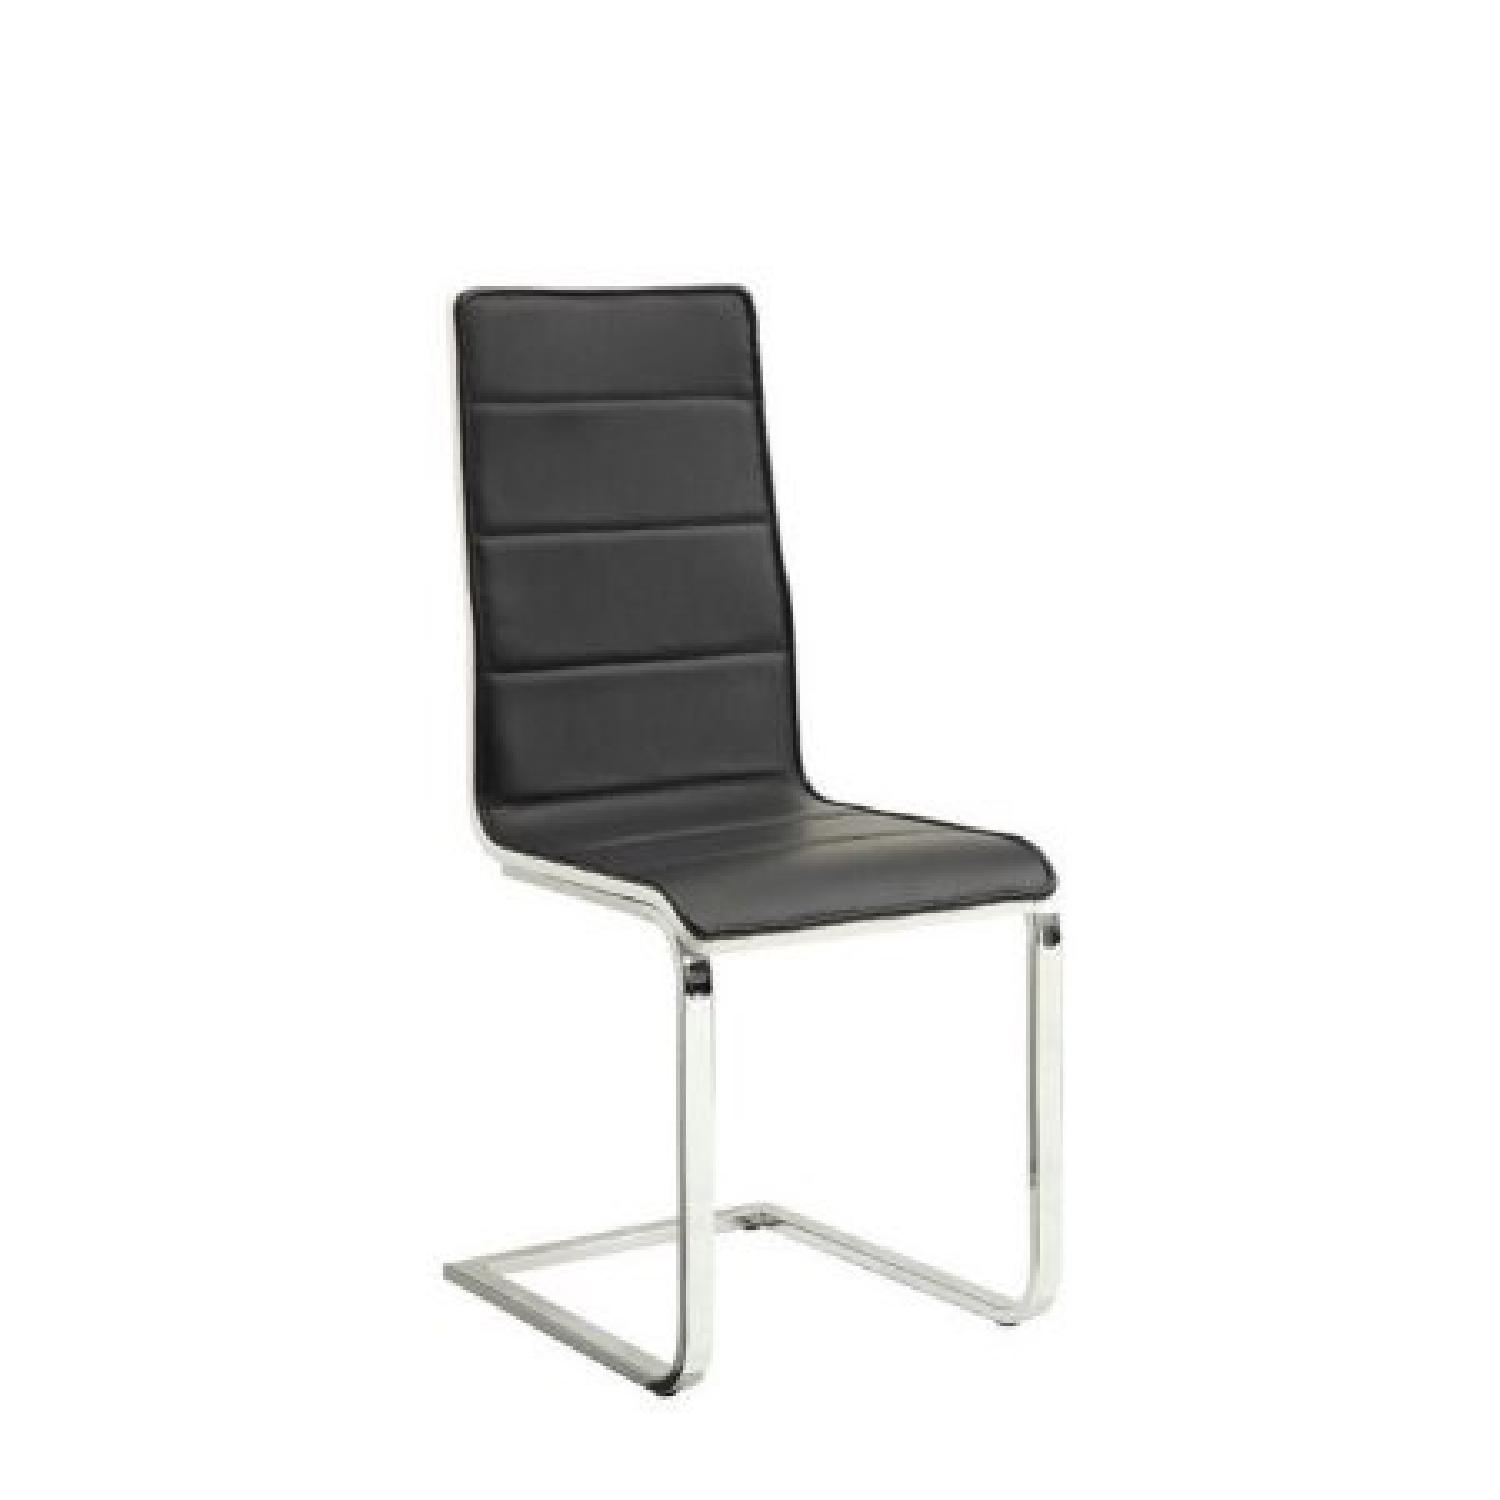 Dining Chair Upholstered in Black Leatherette